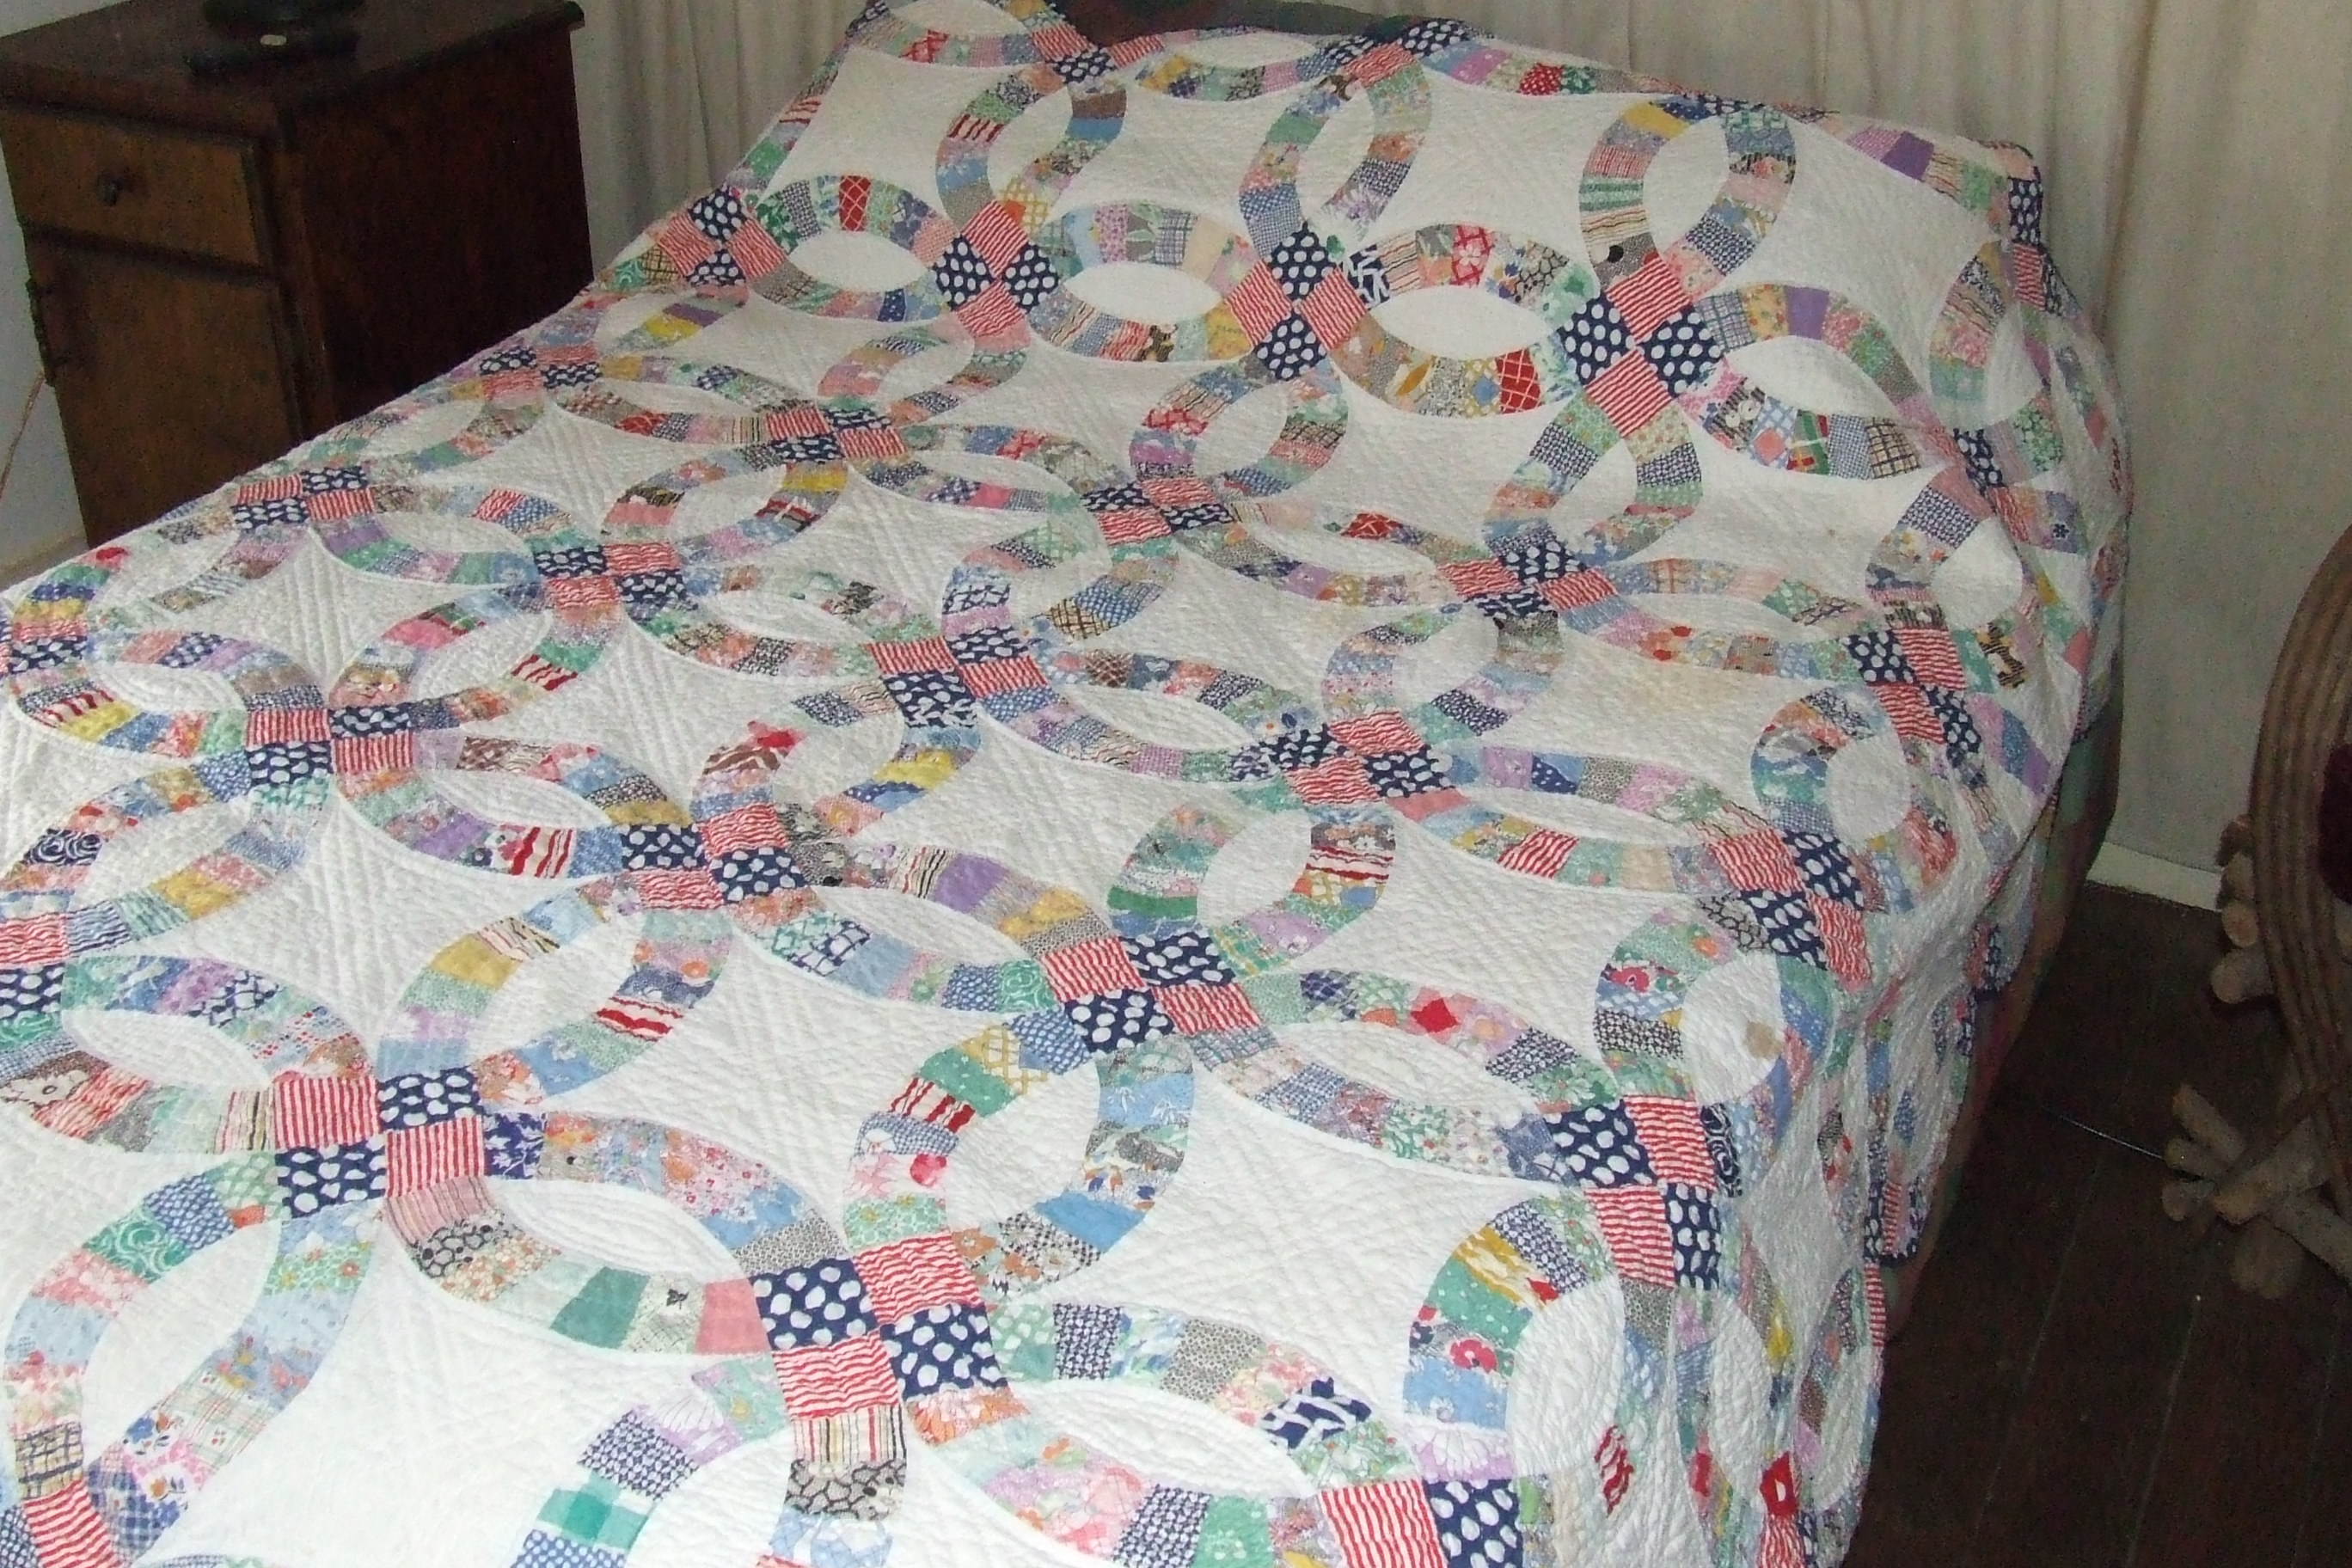 double wedding ring quilt for sale wedding ring sale double wedding ring quilt for sale pictures